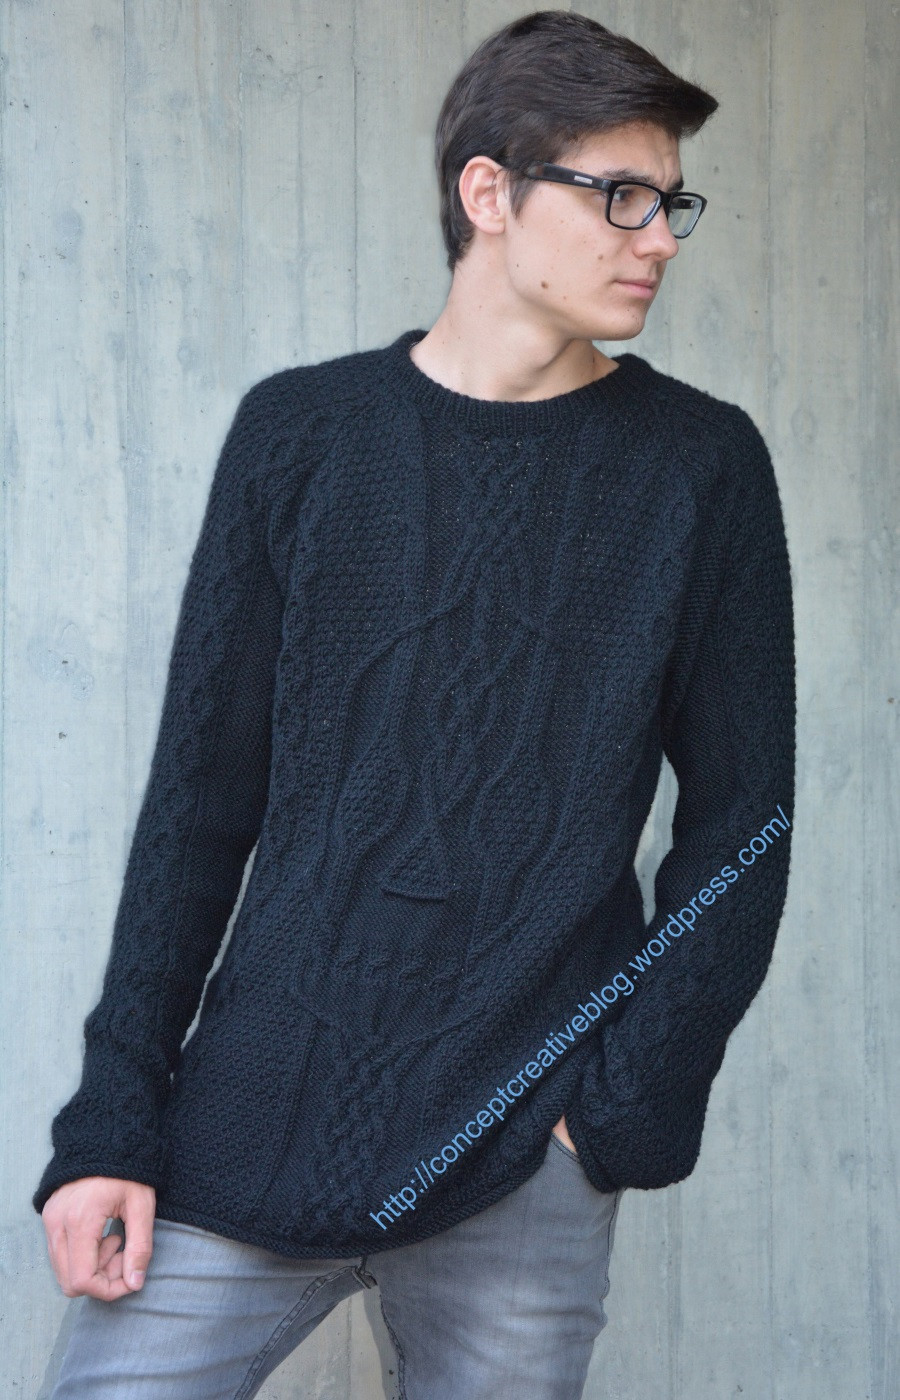 Elegant Knit Cable Pullover with Skull Pattern Free Diagram Cable Knit Sweater Pattern Of Luxury Sweater Coat Knitting Pattern Pdf Cable Knit A Line Coat Cable Knit Sweater Pattern